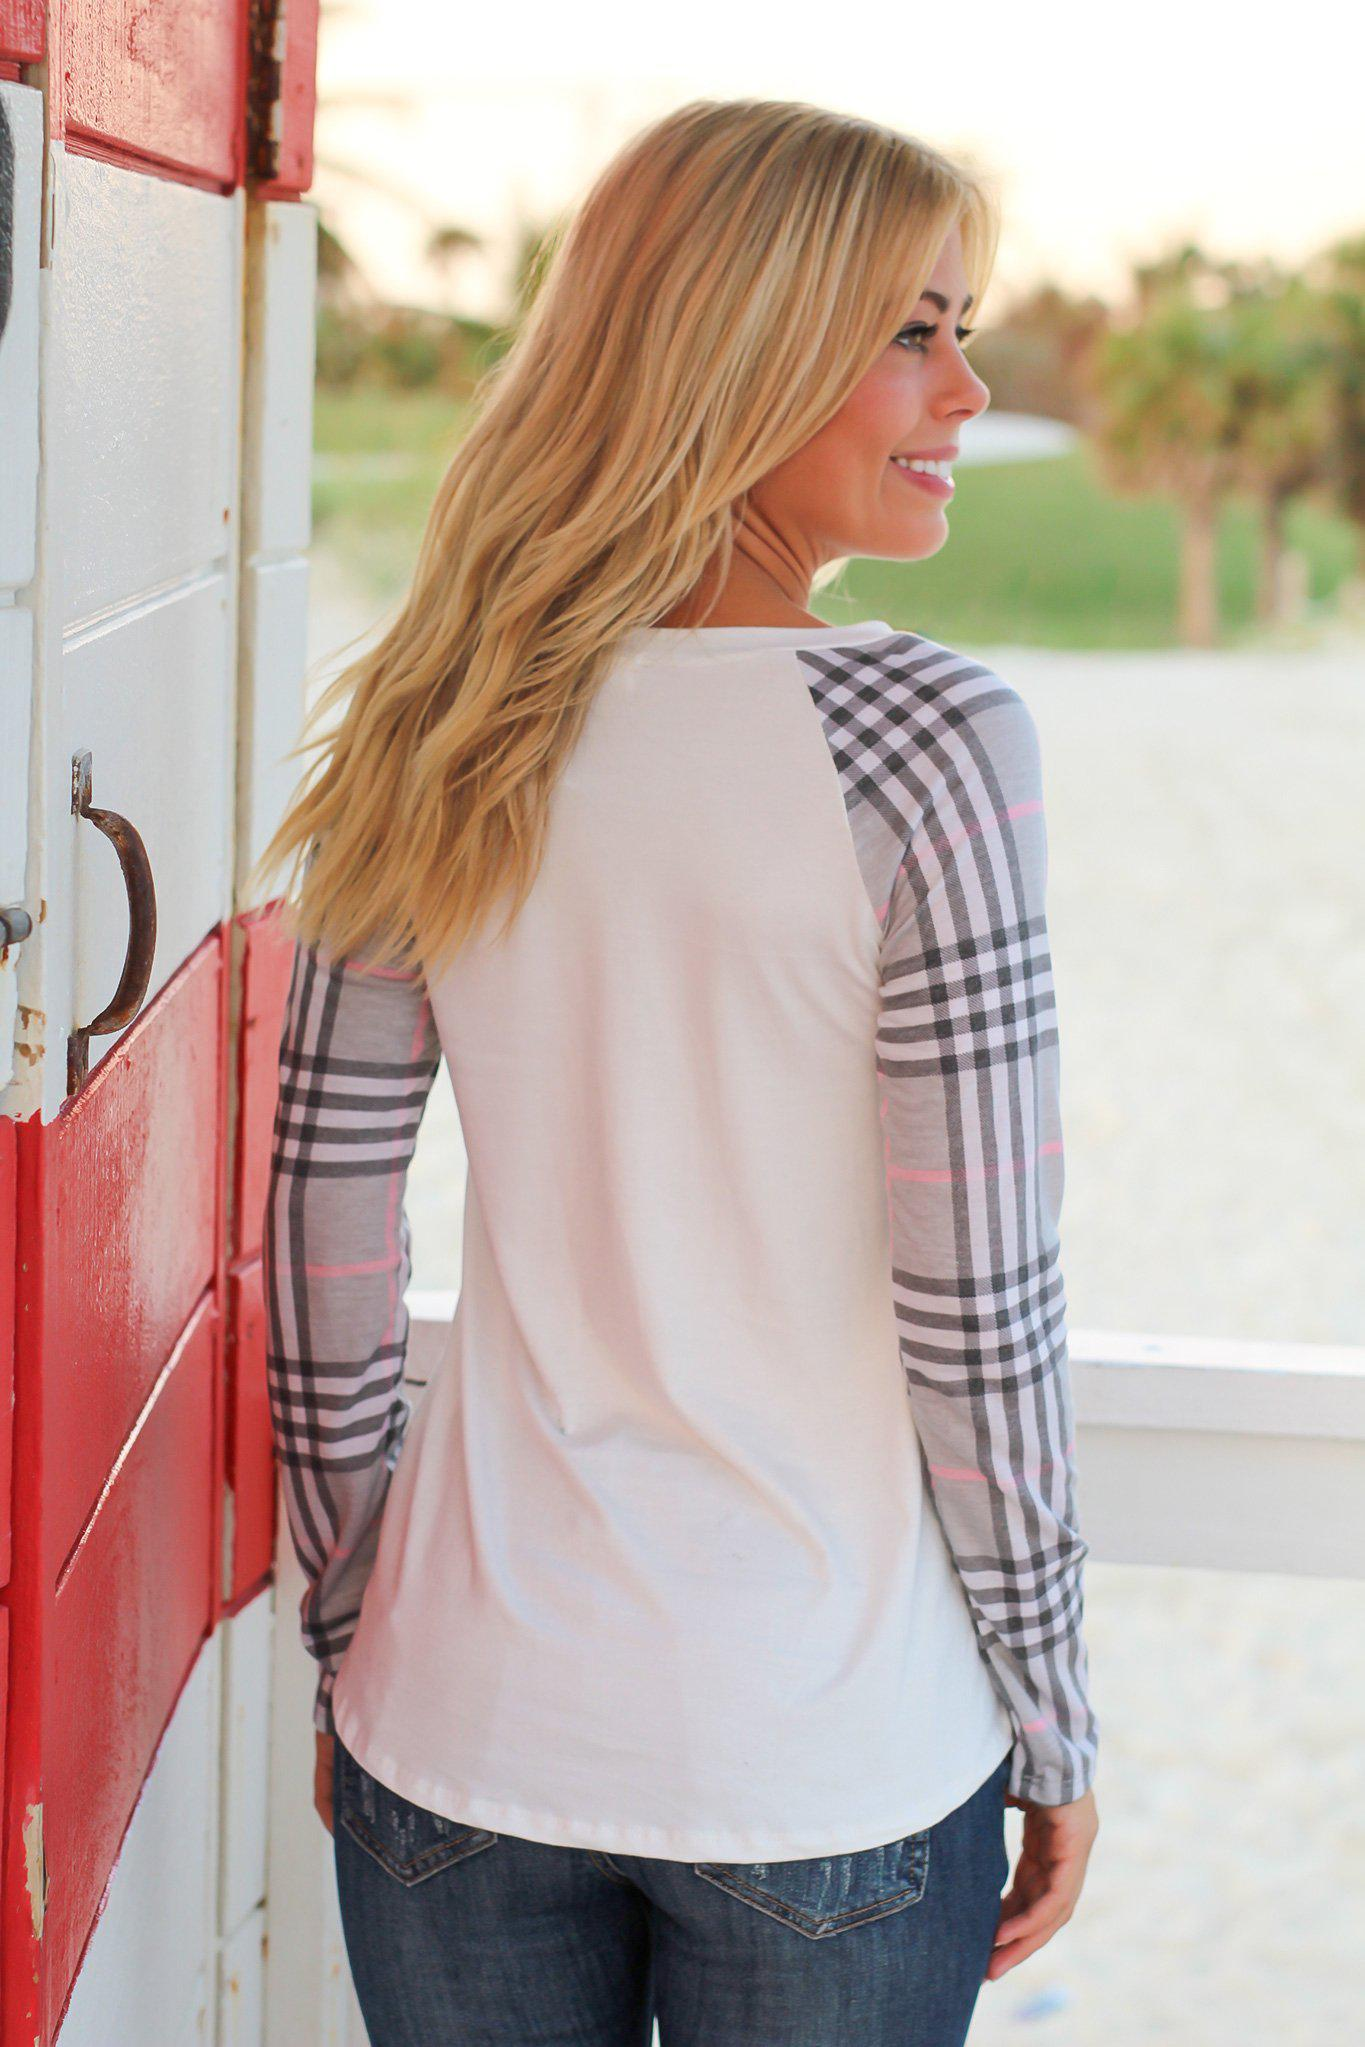 Ivory Top with Gray Plaid Sleeves